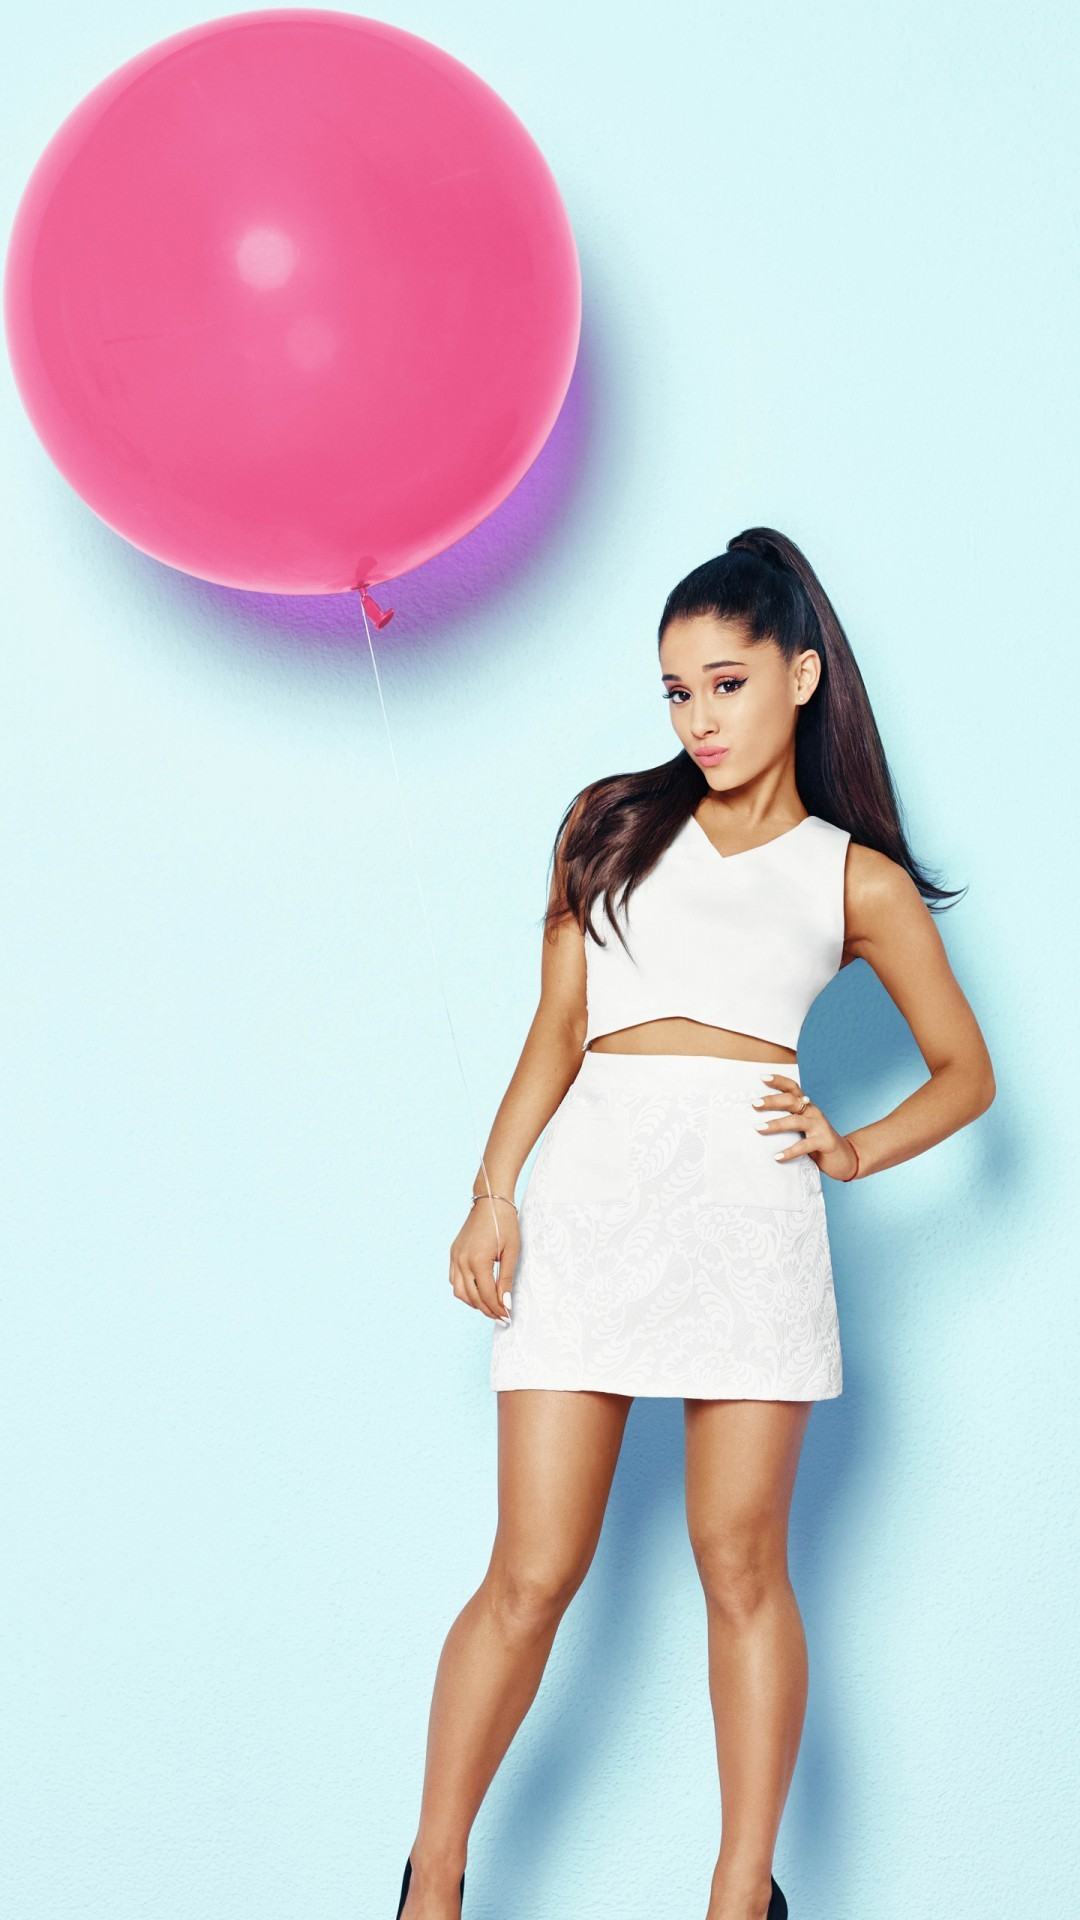 Free Ariana Grande for Cosmopolitan phone wallpaper by mnw71680